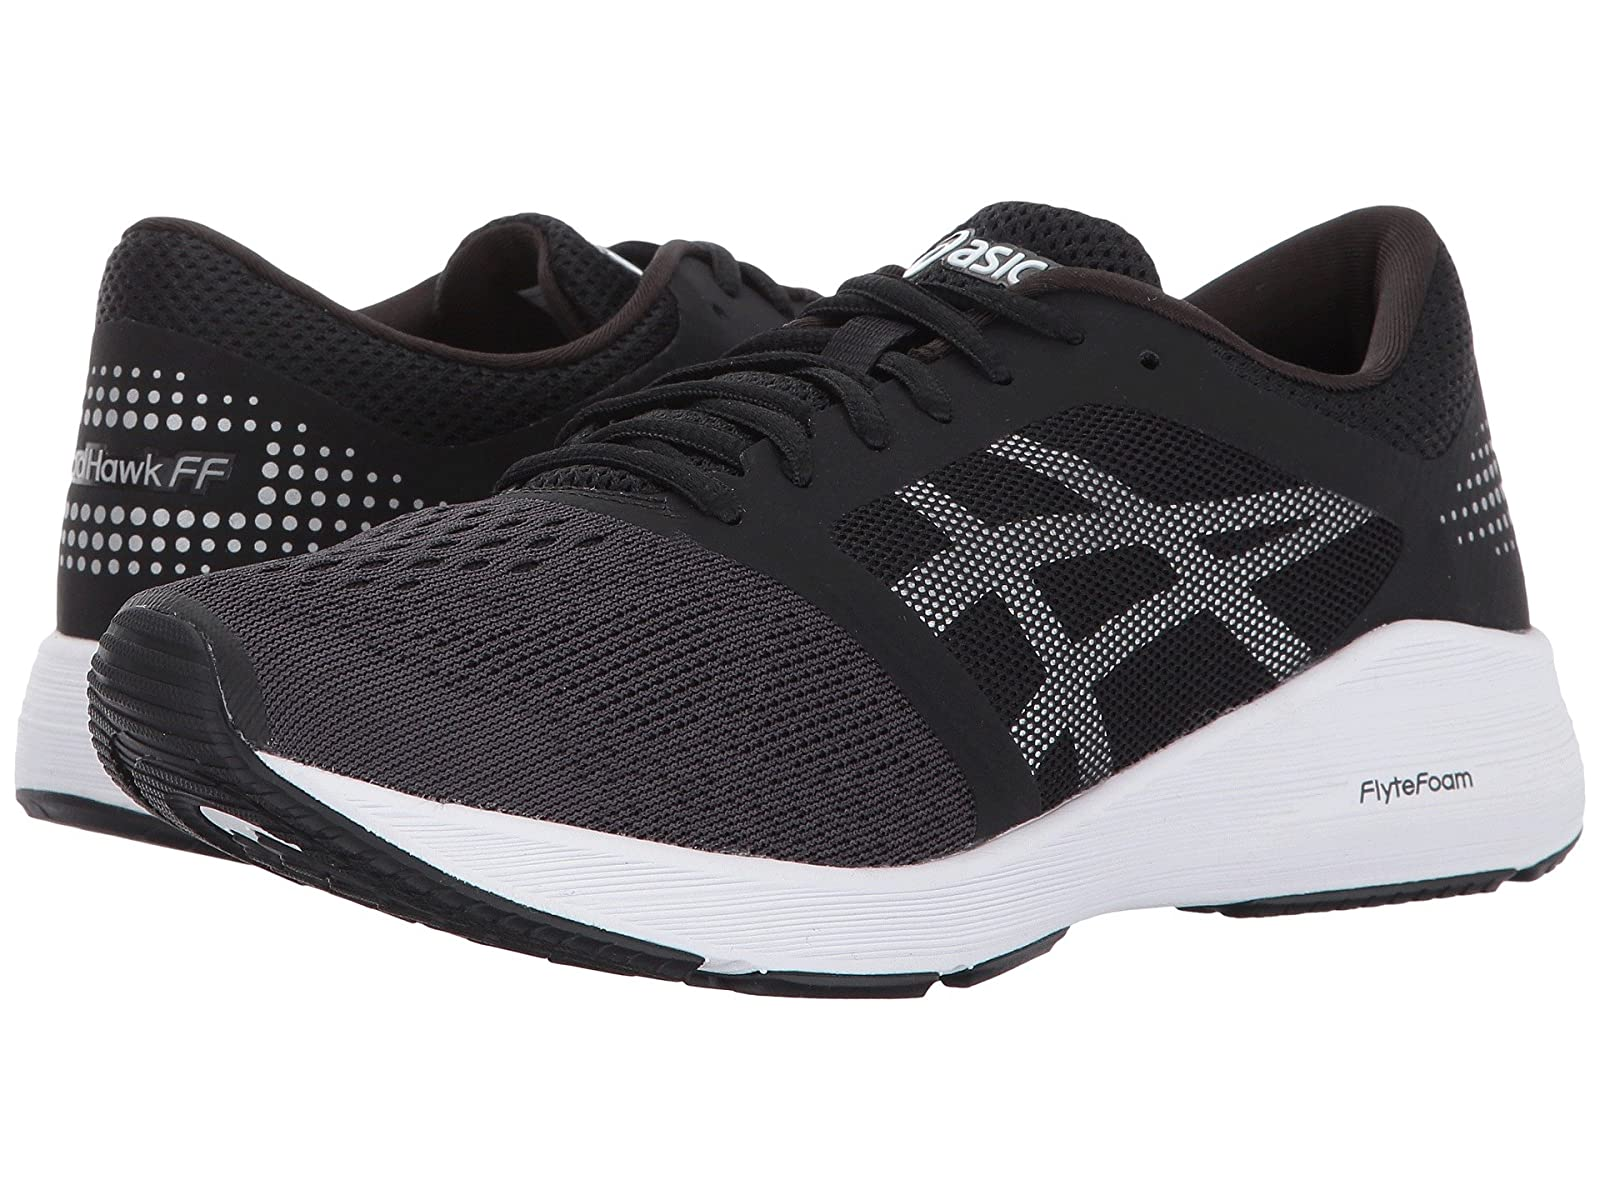 ASICS RoadHawk FFAtmospheric grades have affordable shoes